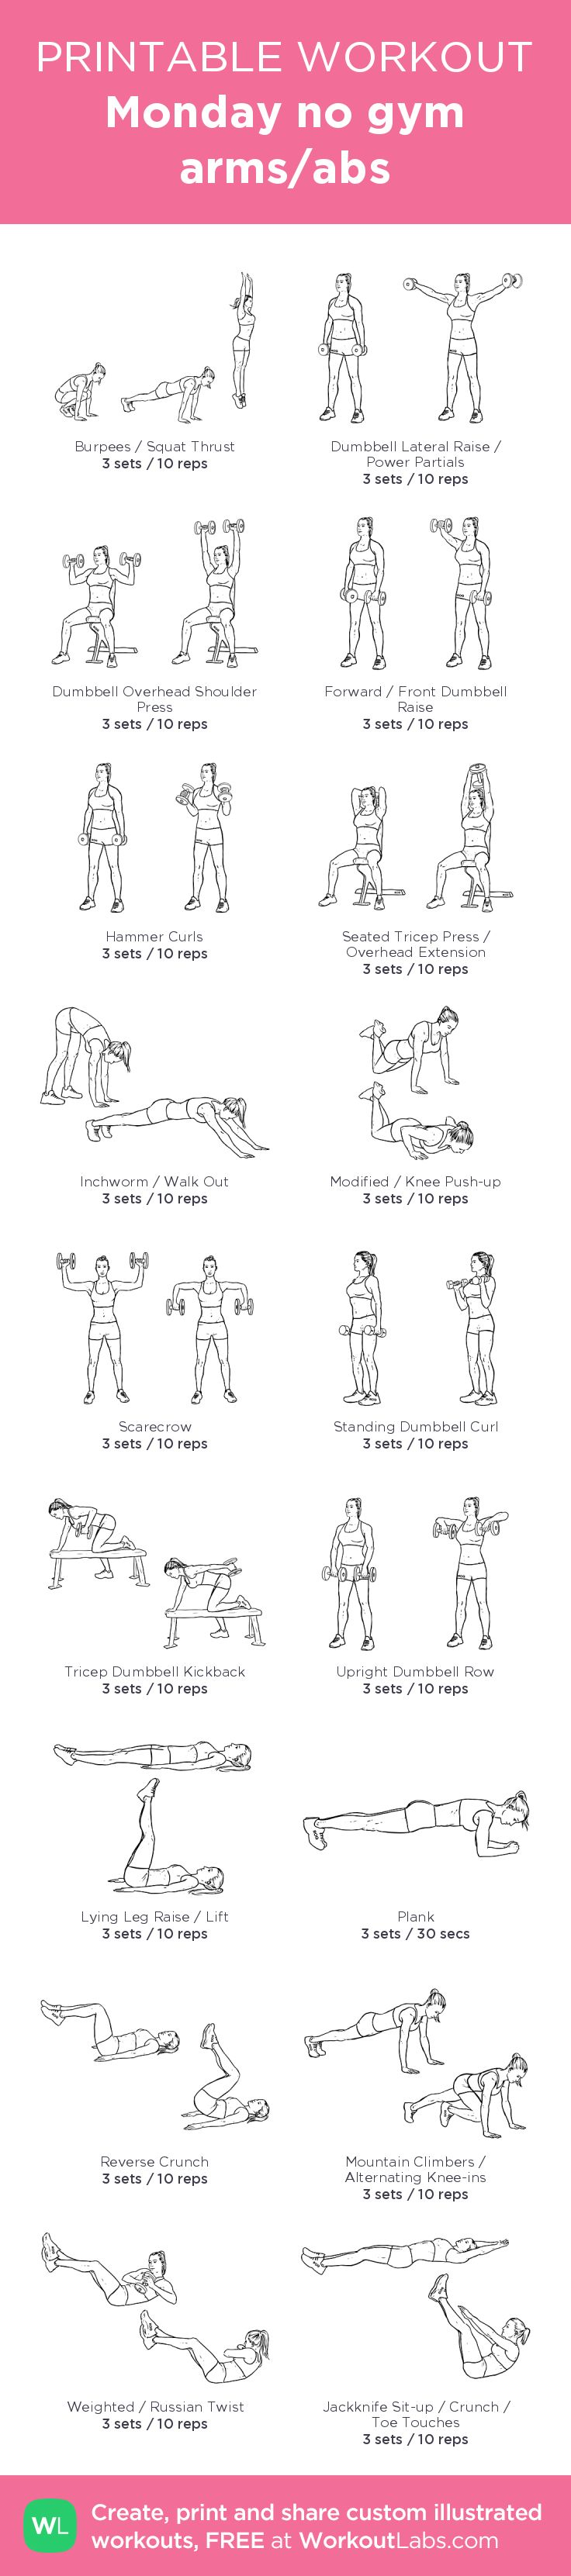 Monday no gym arms/abs– my custom exercise plan created at WorkoutLabs.com • Click through to download as a printable workout PDF #customworkout